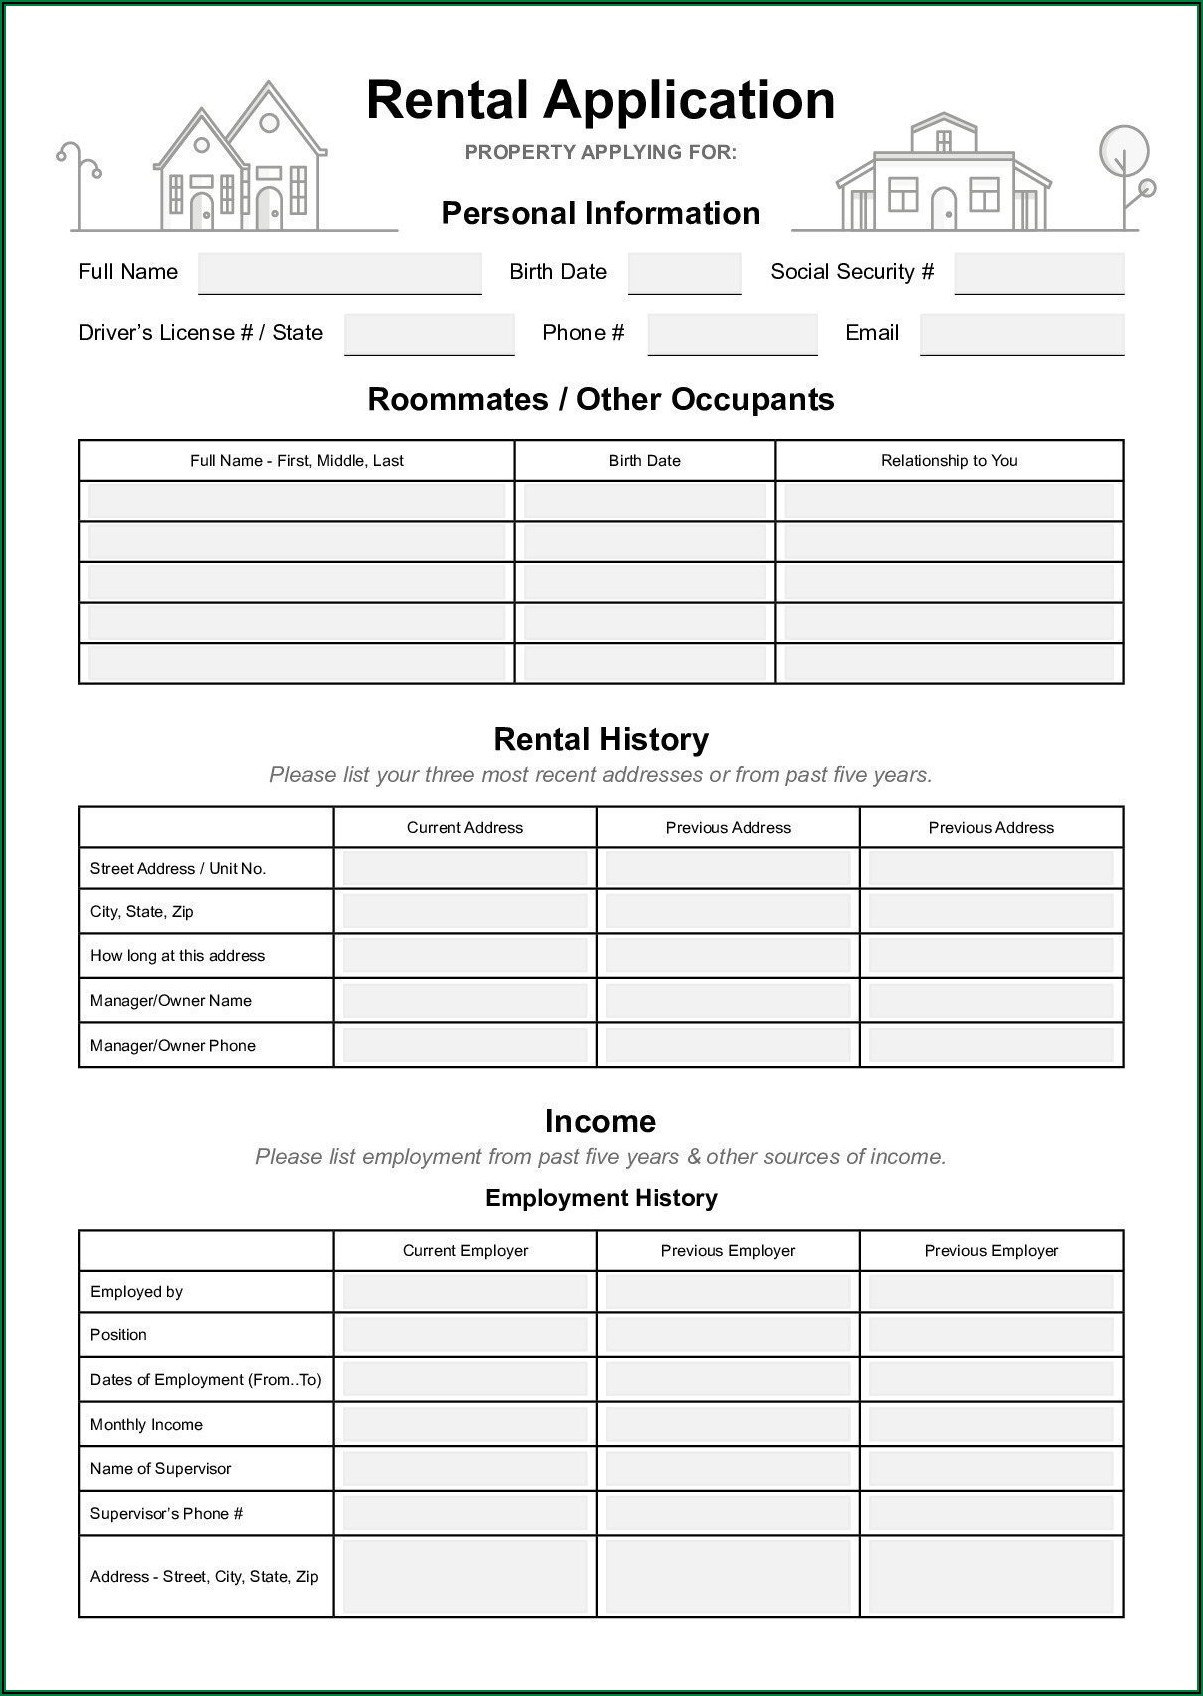 Arizona Real Estate Commission Forms